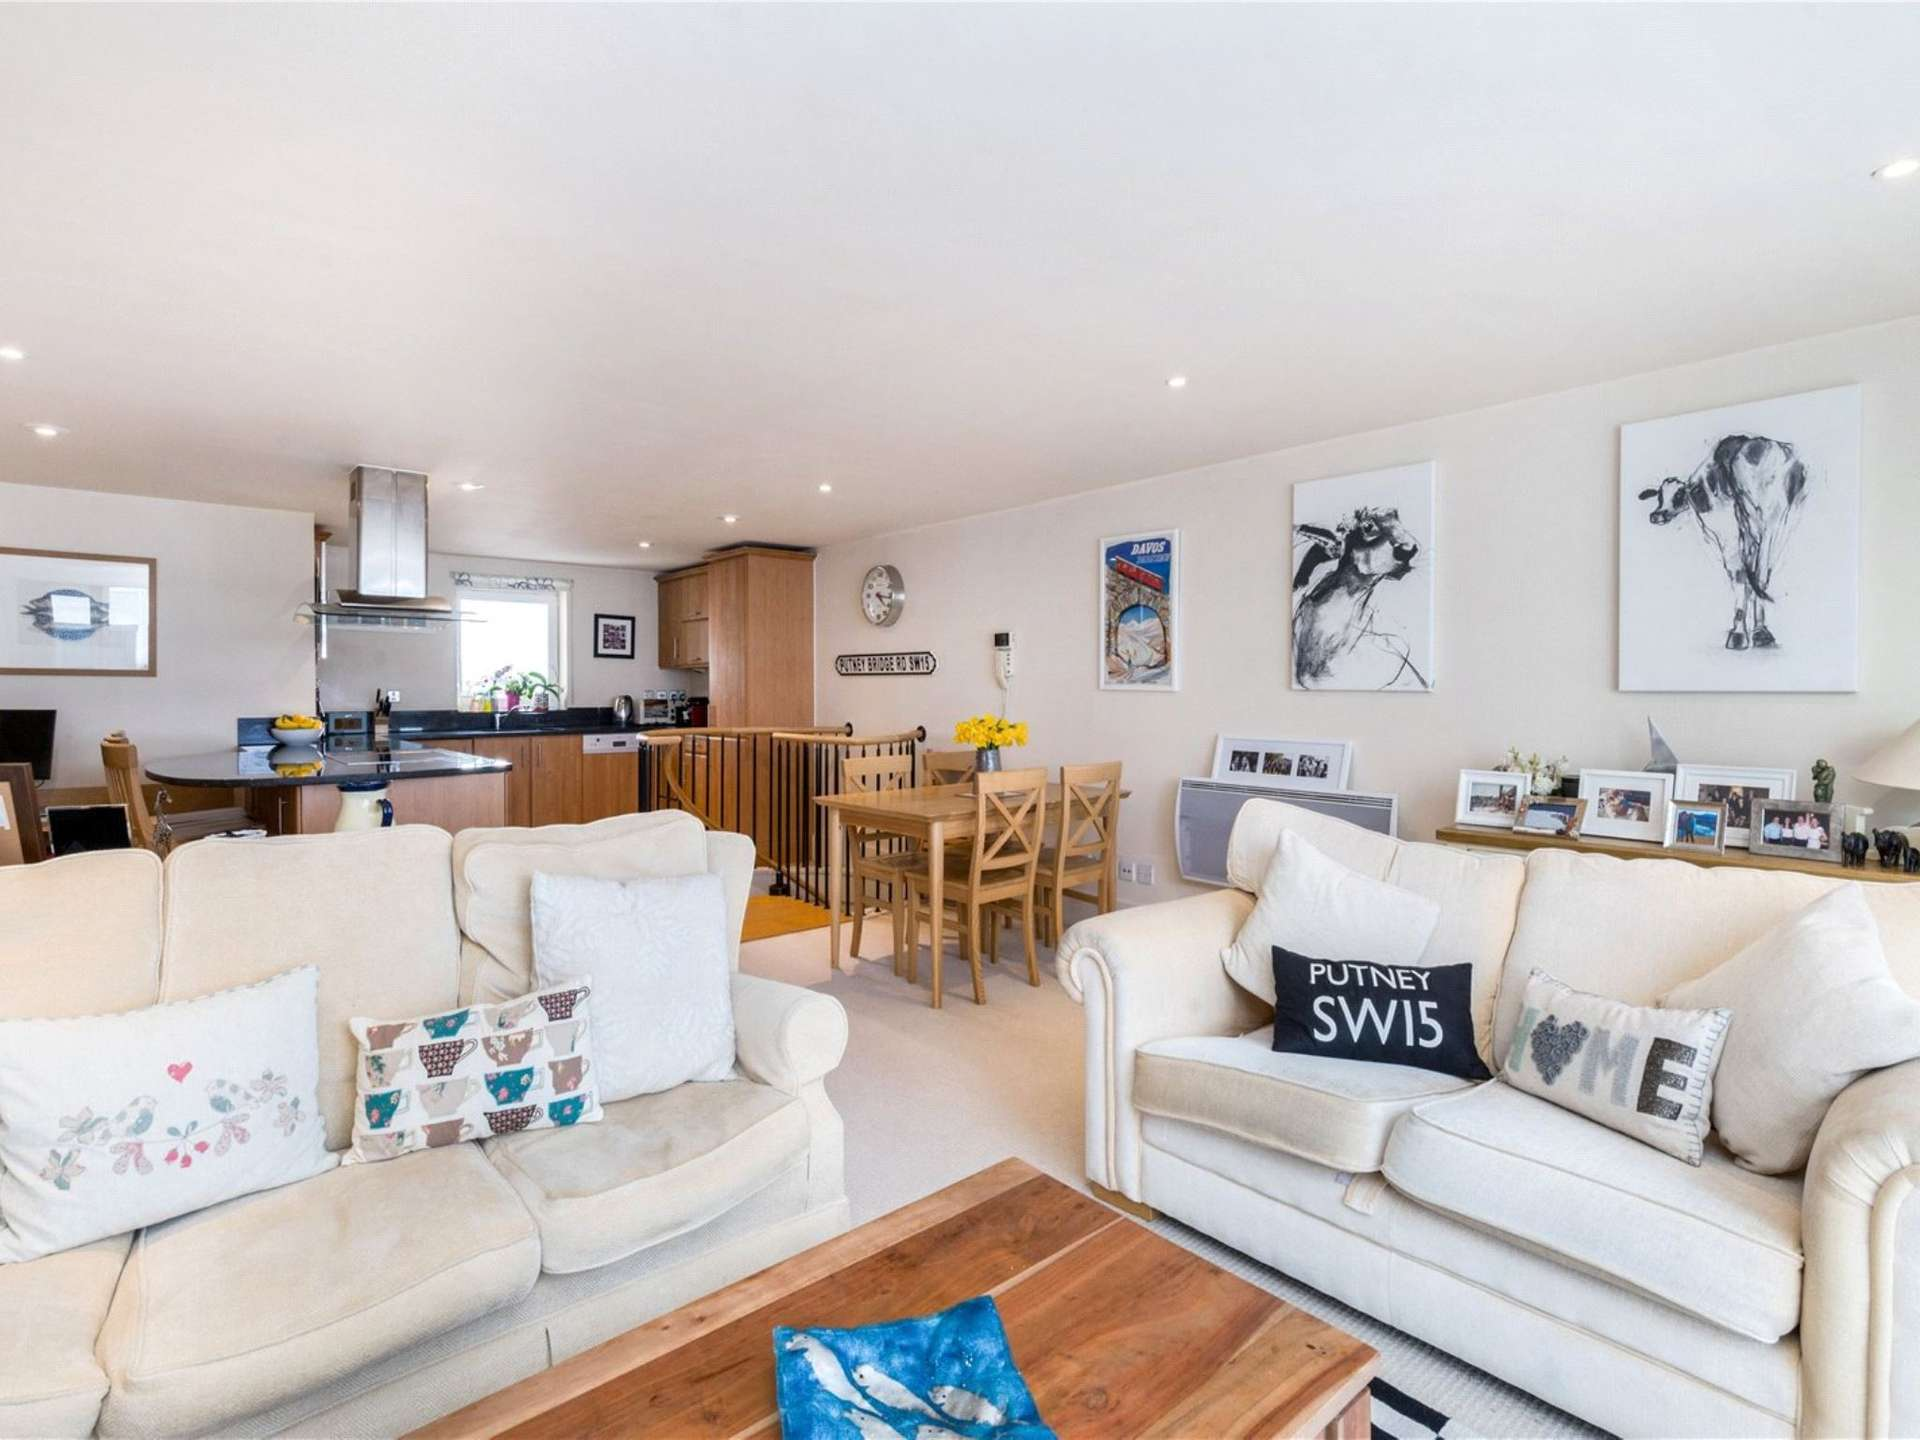 Savills | Putney Wharf, 16 Brewhouse Lane, Putney, London, SW15 2JX ...